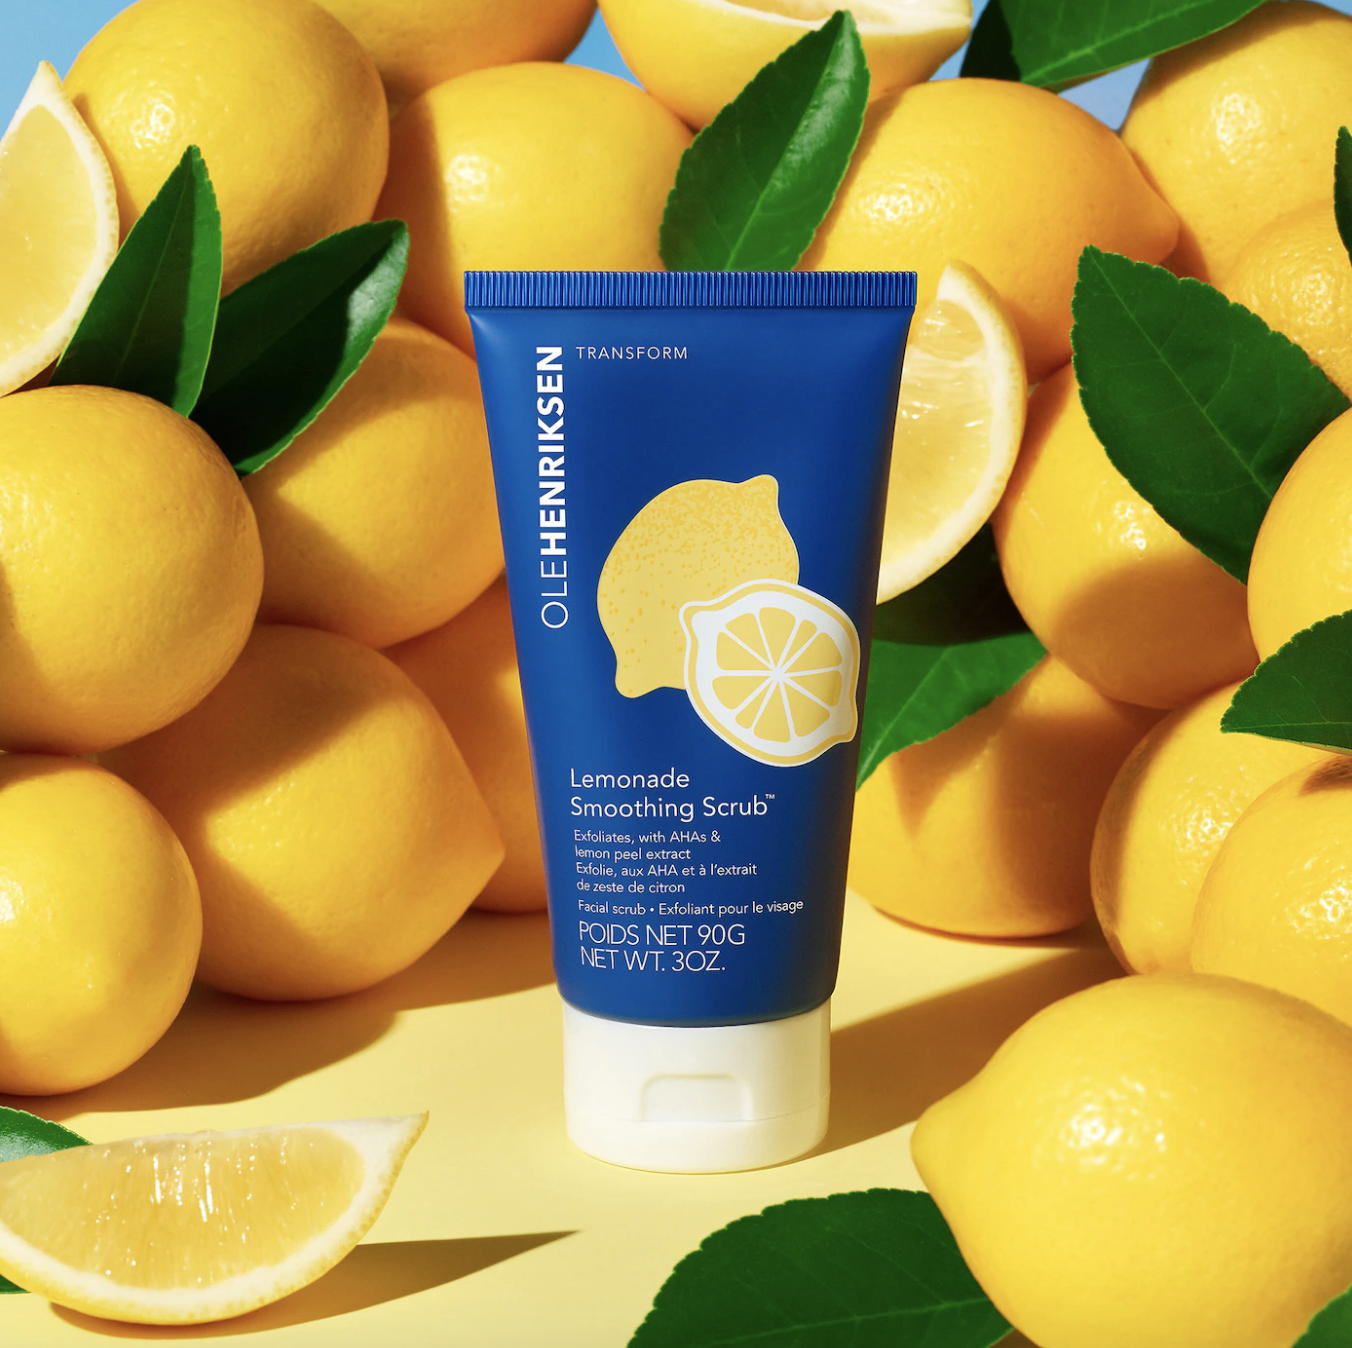 the blue bottle of scrub next to a bunch of lemons